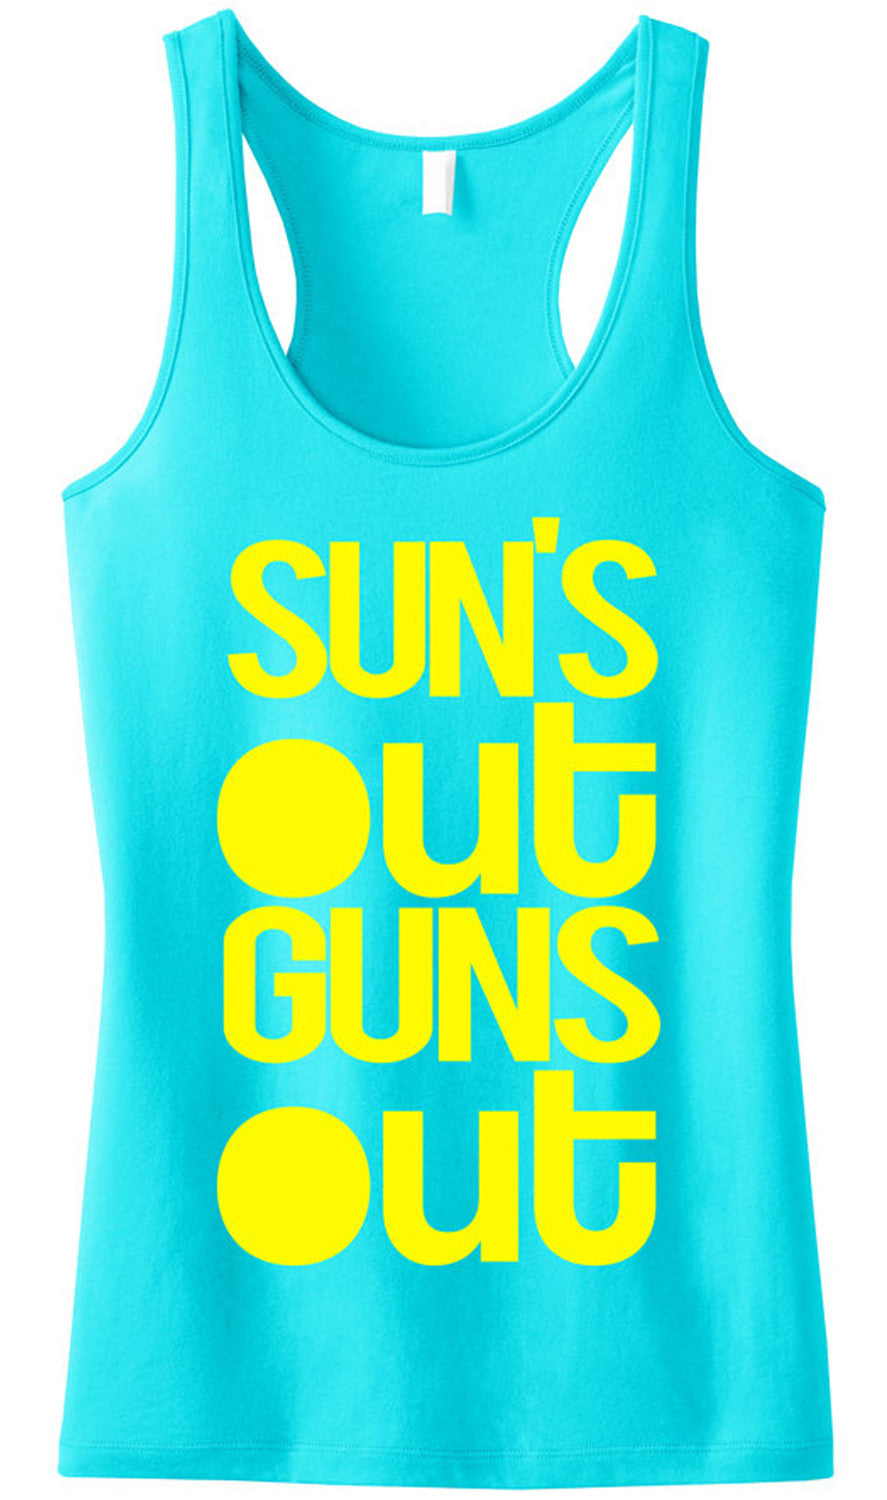 SUN'S OUT GUNS OUT Aqua Tank Top